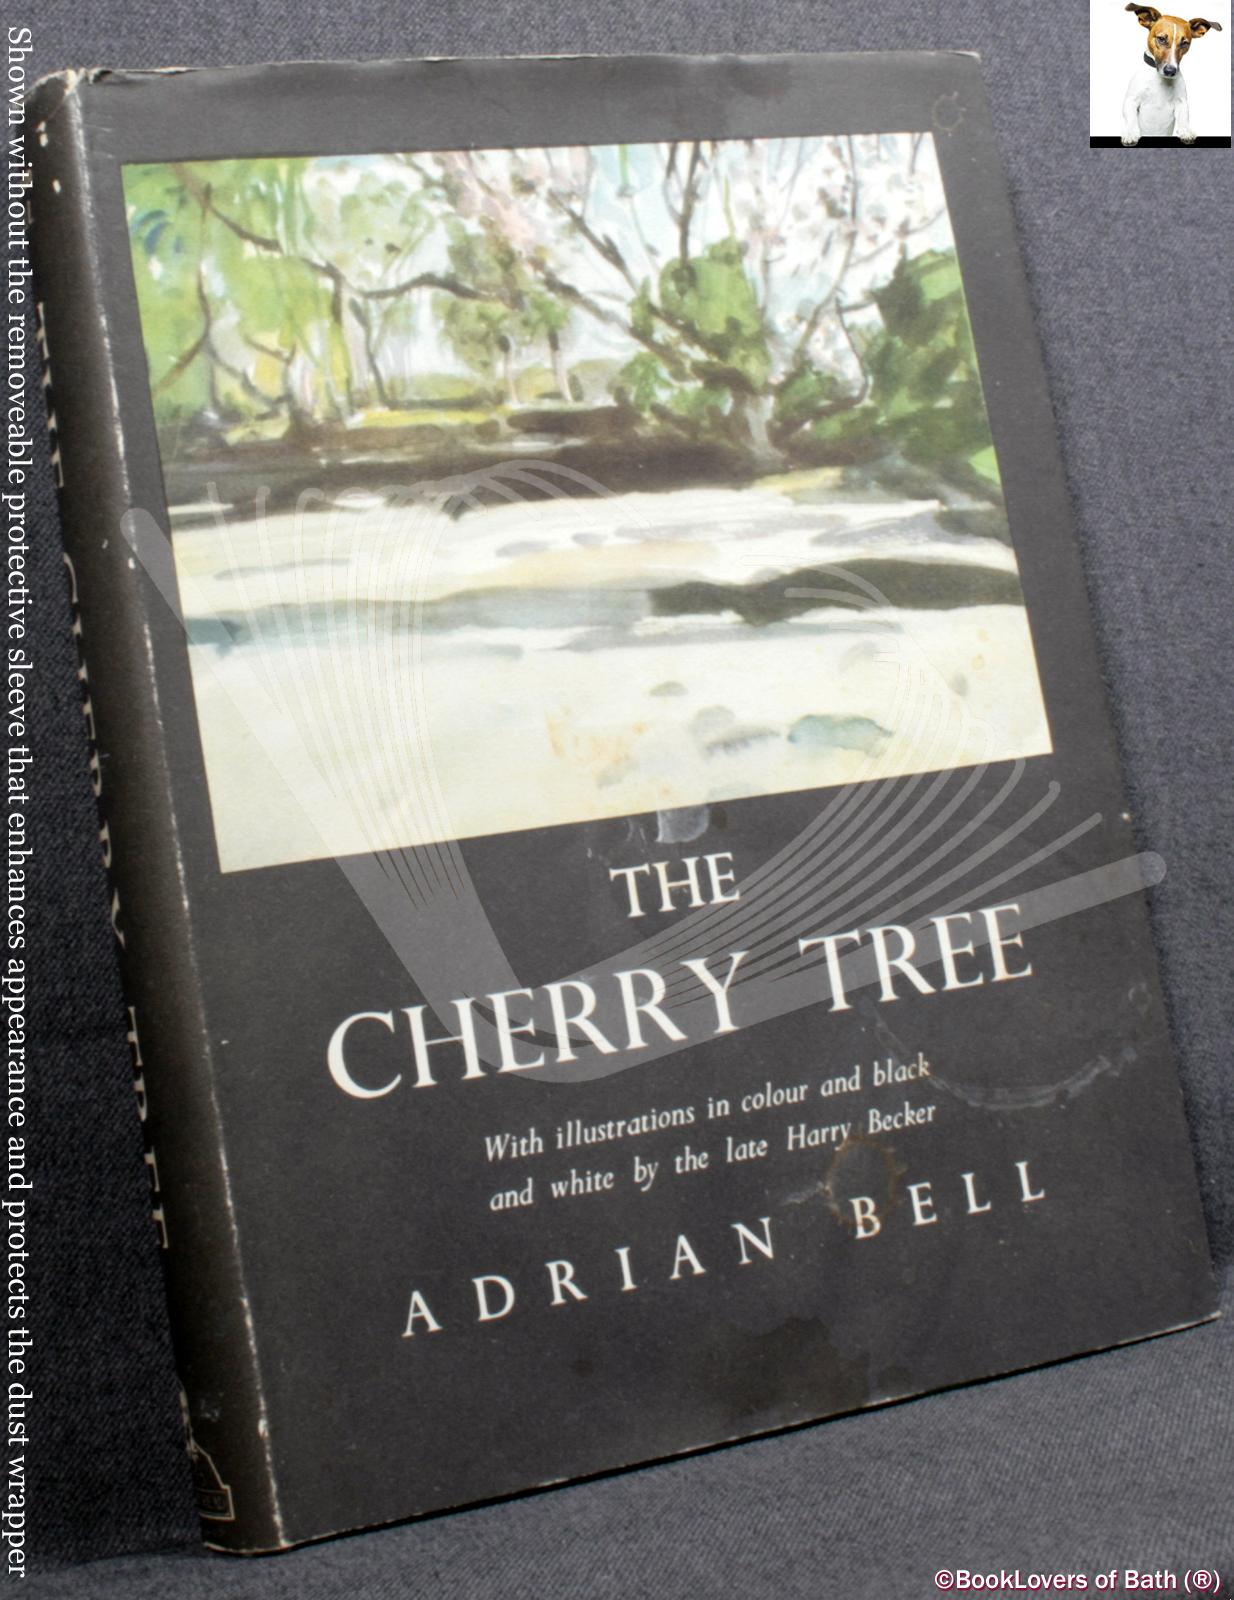 Corduroy, Silver Ley & the Cherry Tree Adrian Bell